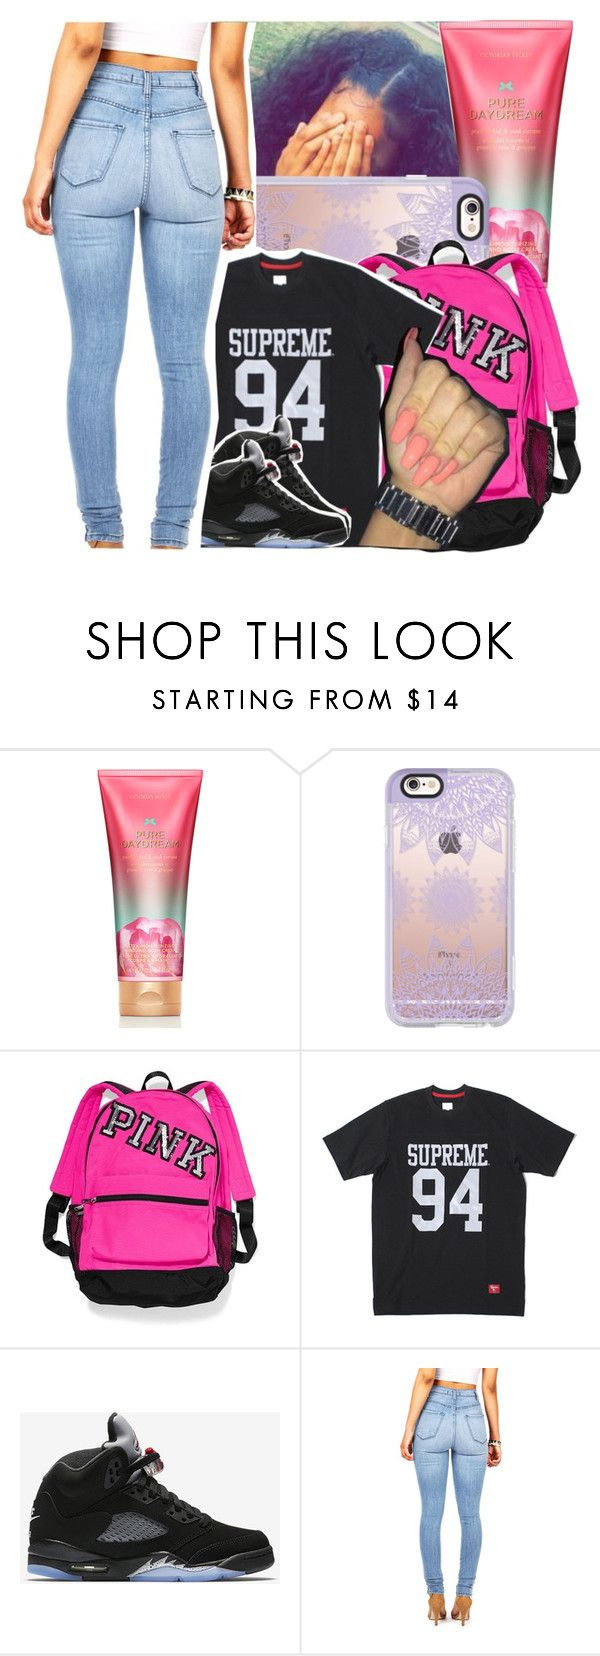 """""""My style doin damage, diamonds they dancin"""" by theyknowtyy ❤ liked on Polyvore featuring Victoria's Secret, Casetify and NIKE"""